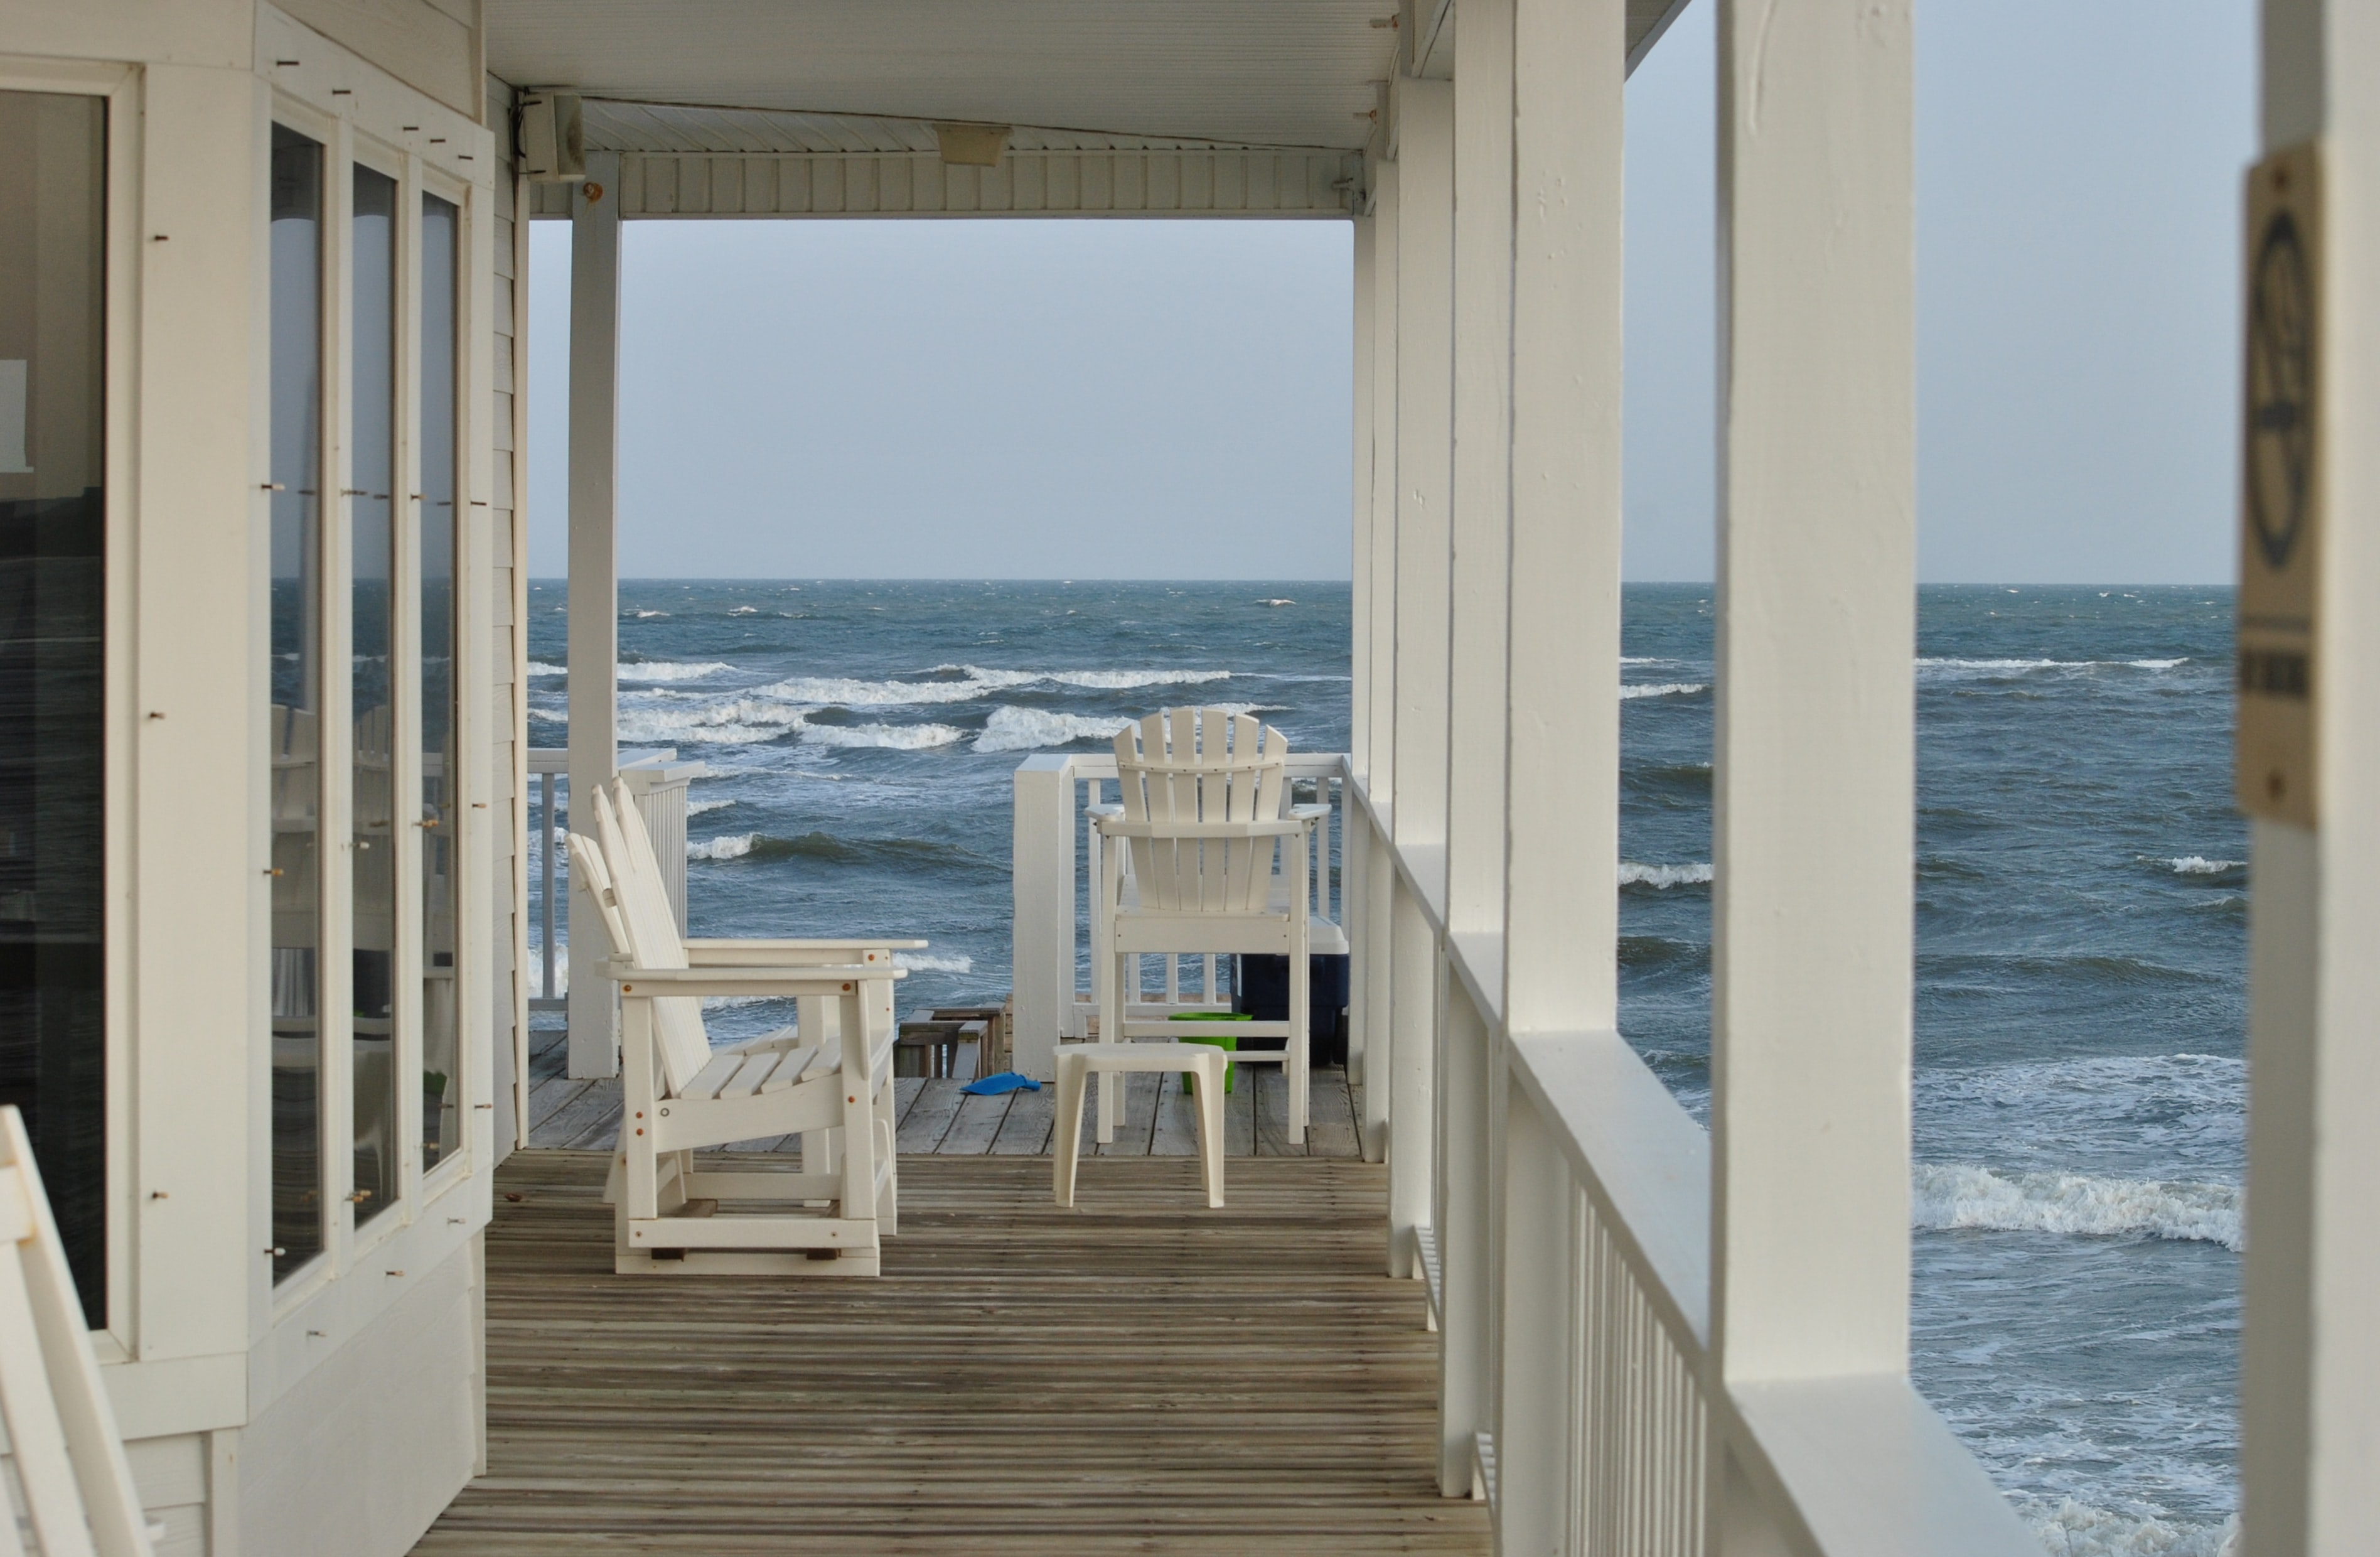 7 Things to Know Before Buying an Ocean Access Home